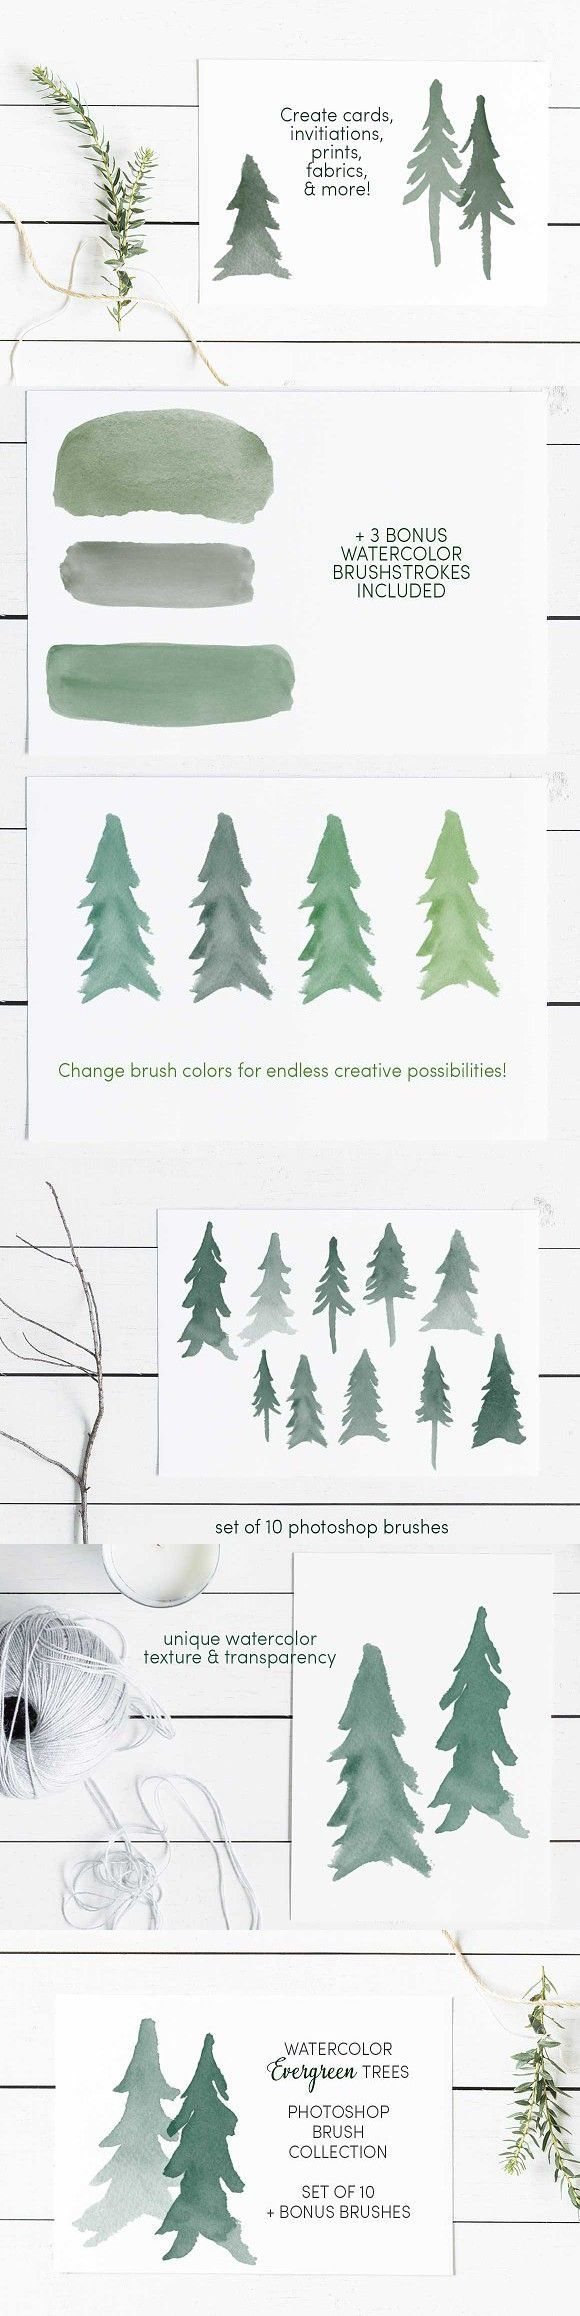 Watercolor Evergreen Trees Brush Set Photoshop Brushes In 2020 With Images Watercolor Trees Evergreen Trees Tree Design On Wall